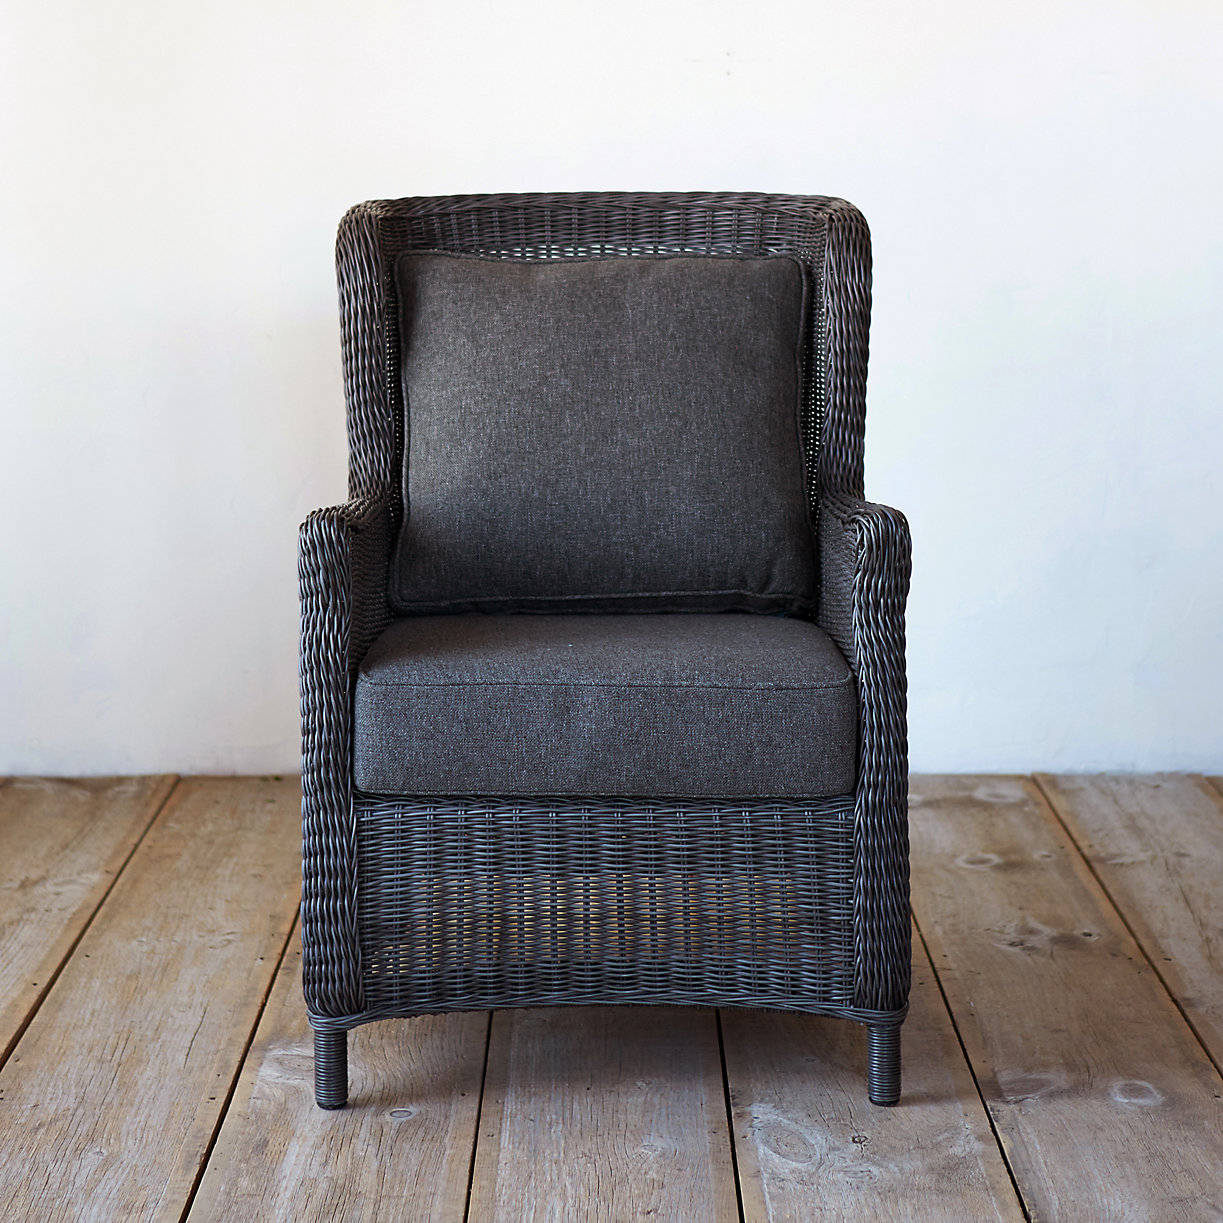 Metal outdoor club chairs - Product Offer Badge Modern Wingback All Weather Wicker Armchair